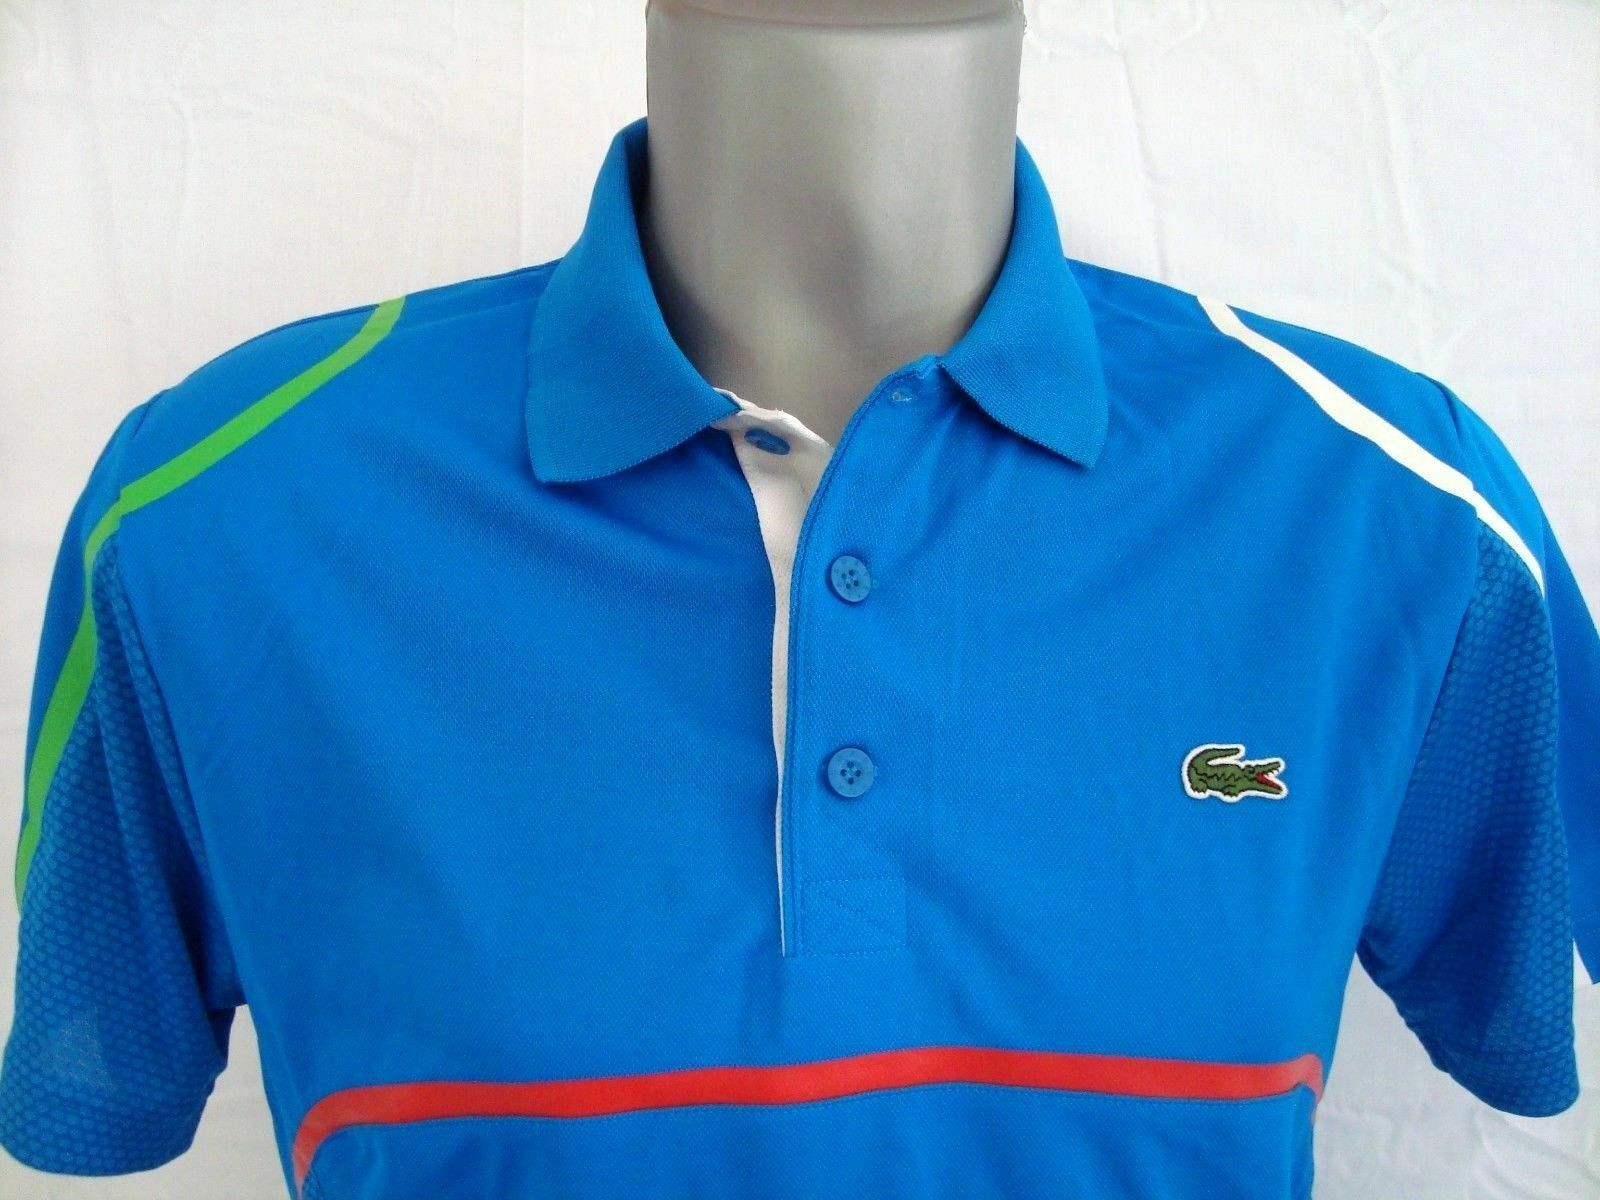 f6f3fdaf5 Lacoste SPORT bluee Ultra Dry Men s Athletic Jersey Polo Shirt NWT Sz. XS